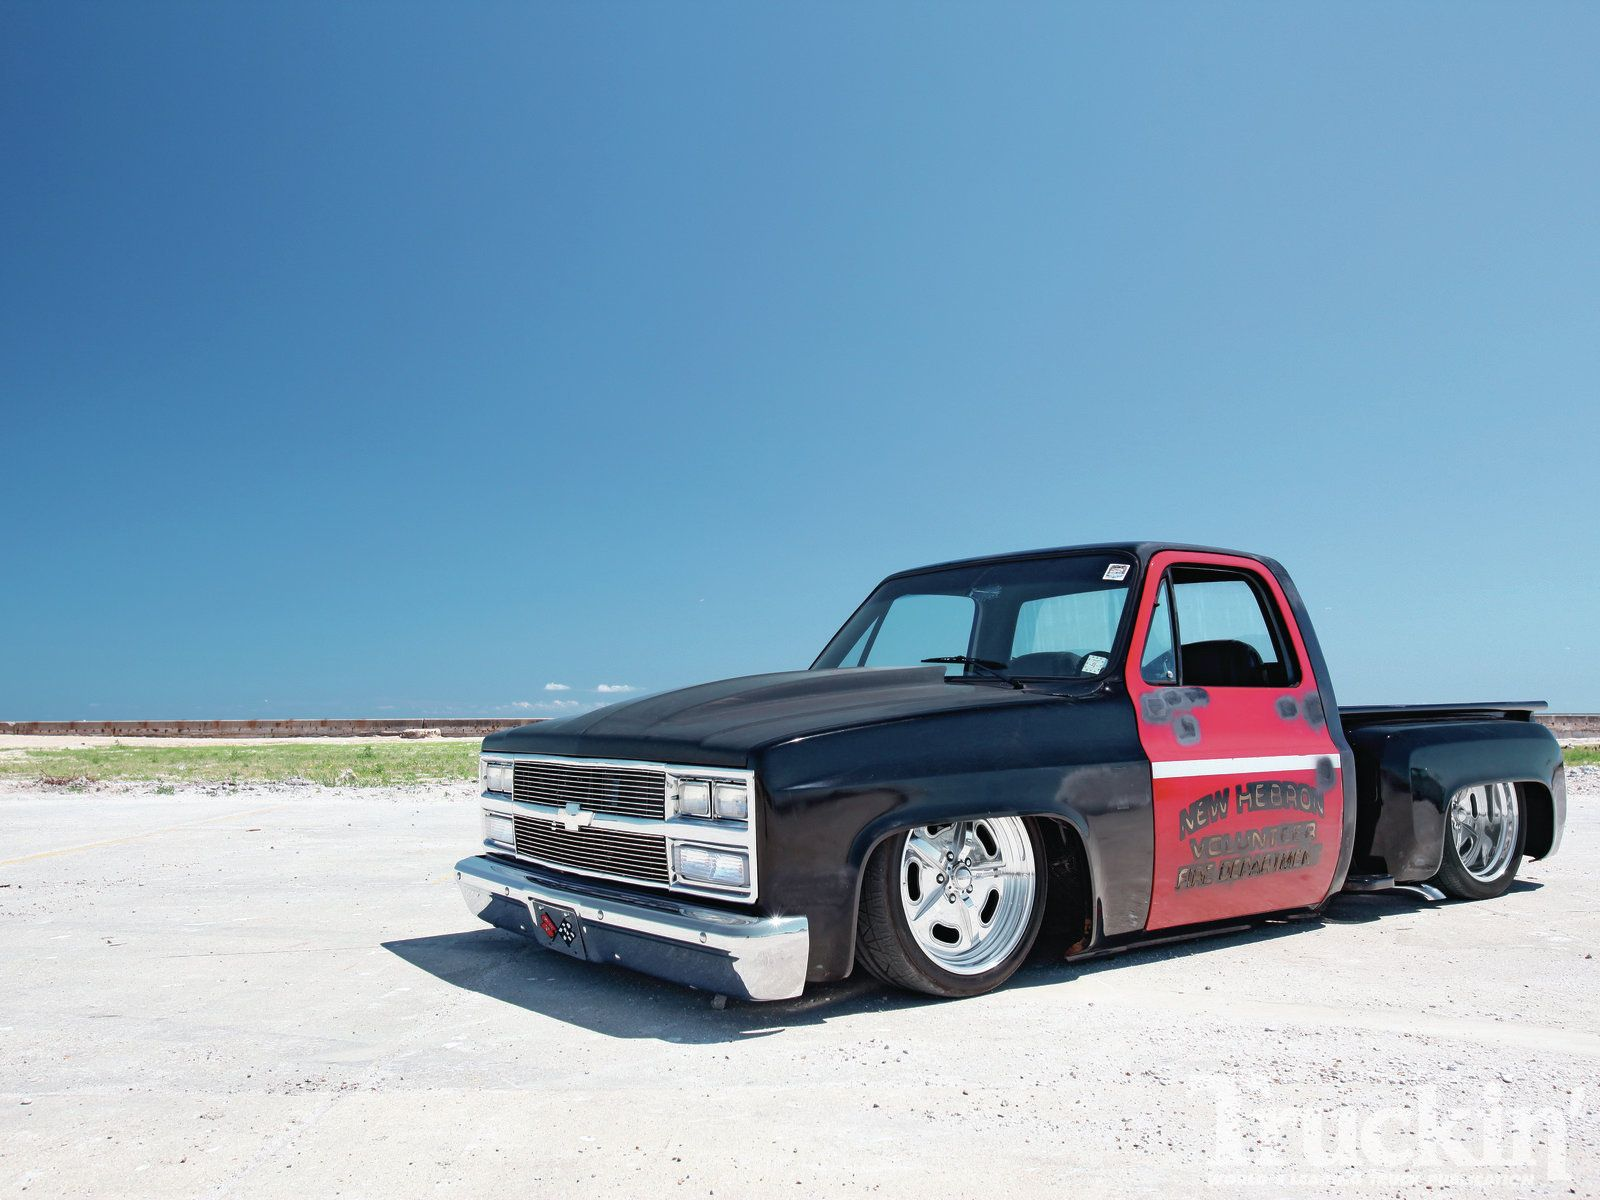 busted knuckles 1981 chevy c10 stepside front angle photo 1 [ 1600 x 1200 Pixel ]